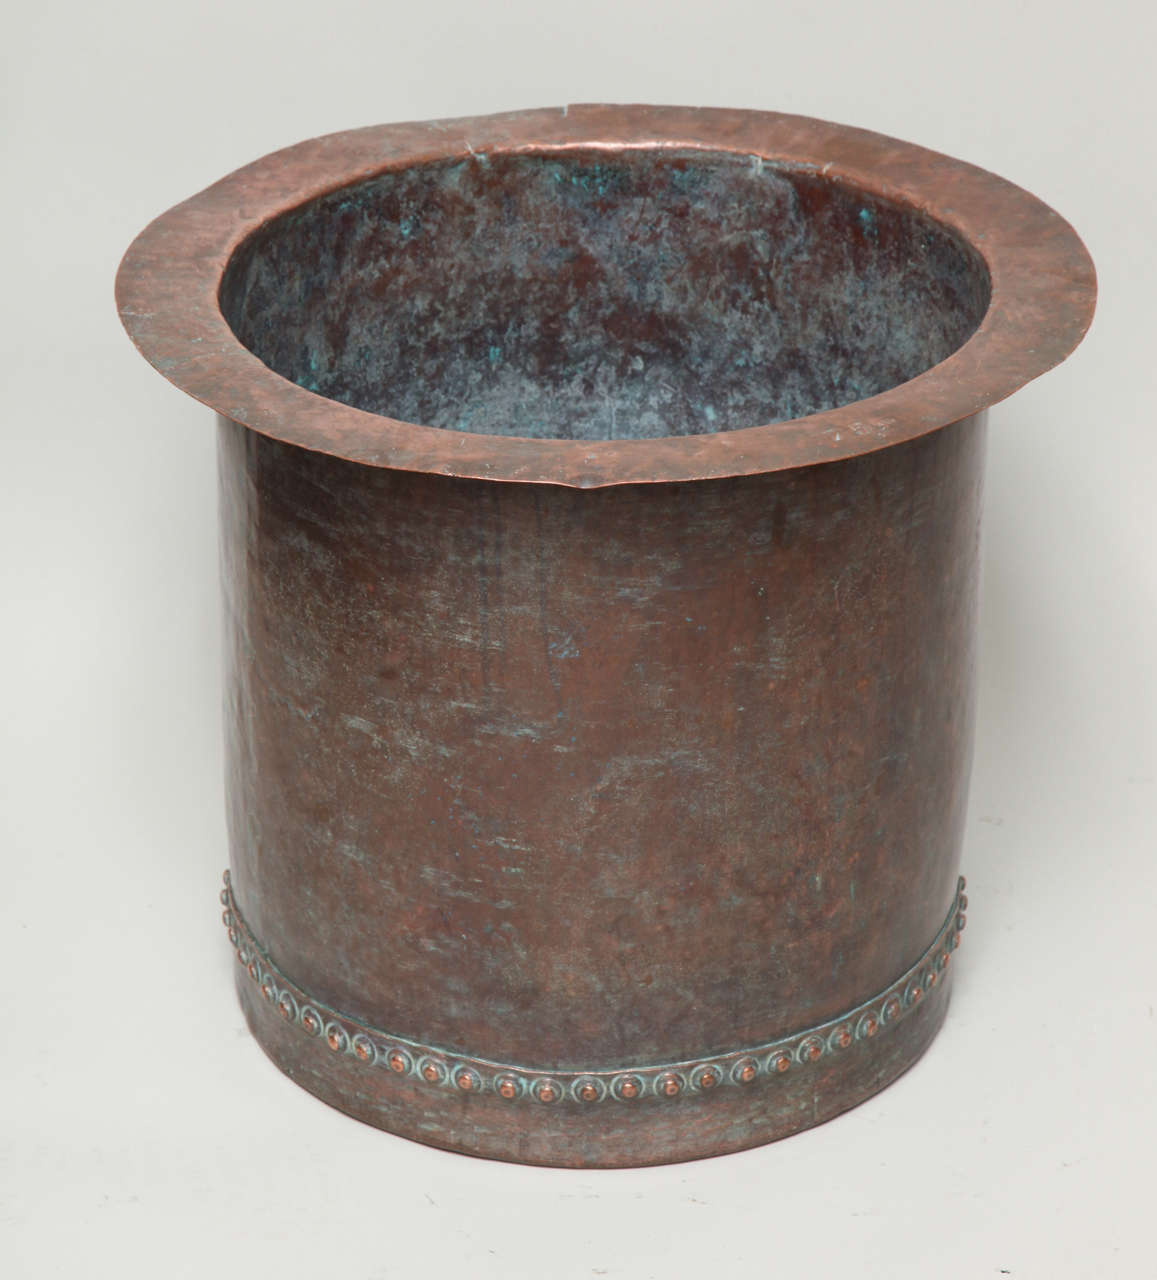 Fantastic Riveted Copper Early 19th Century Oversize Log Bin For Sale 6